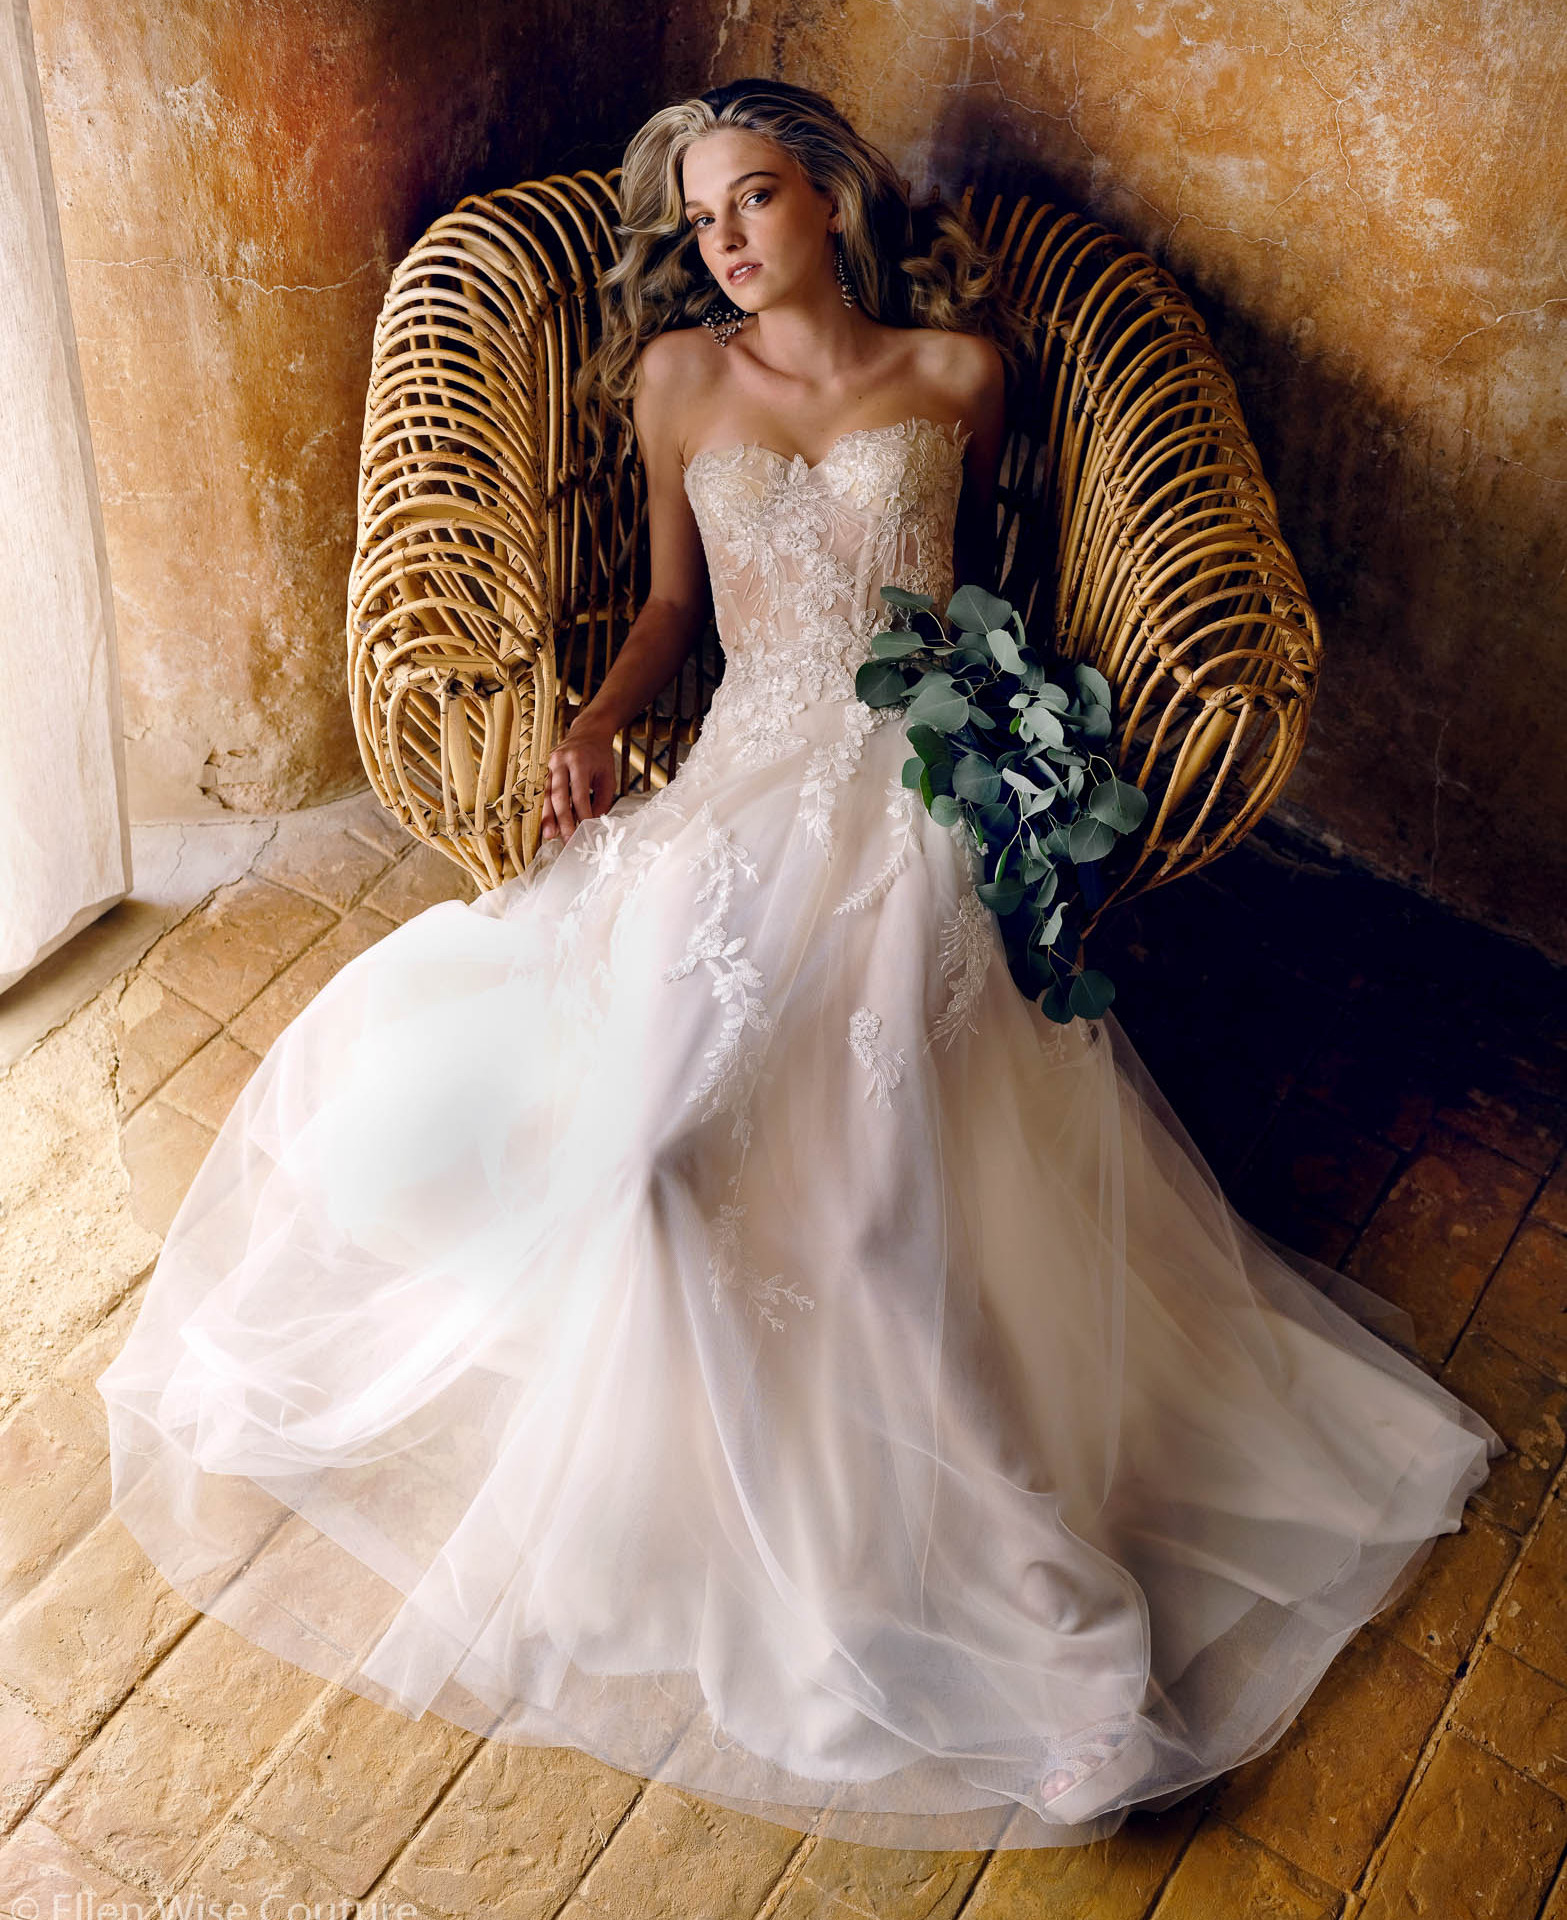 Seraphina by Wedding Dress Ellen Wise Couture